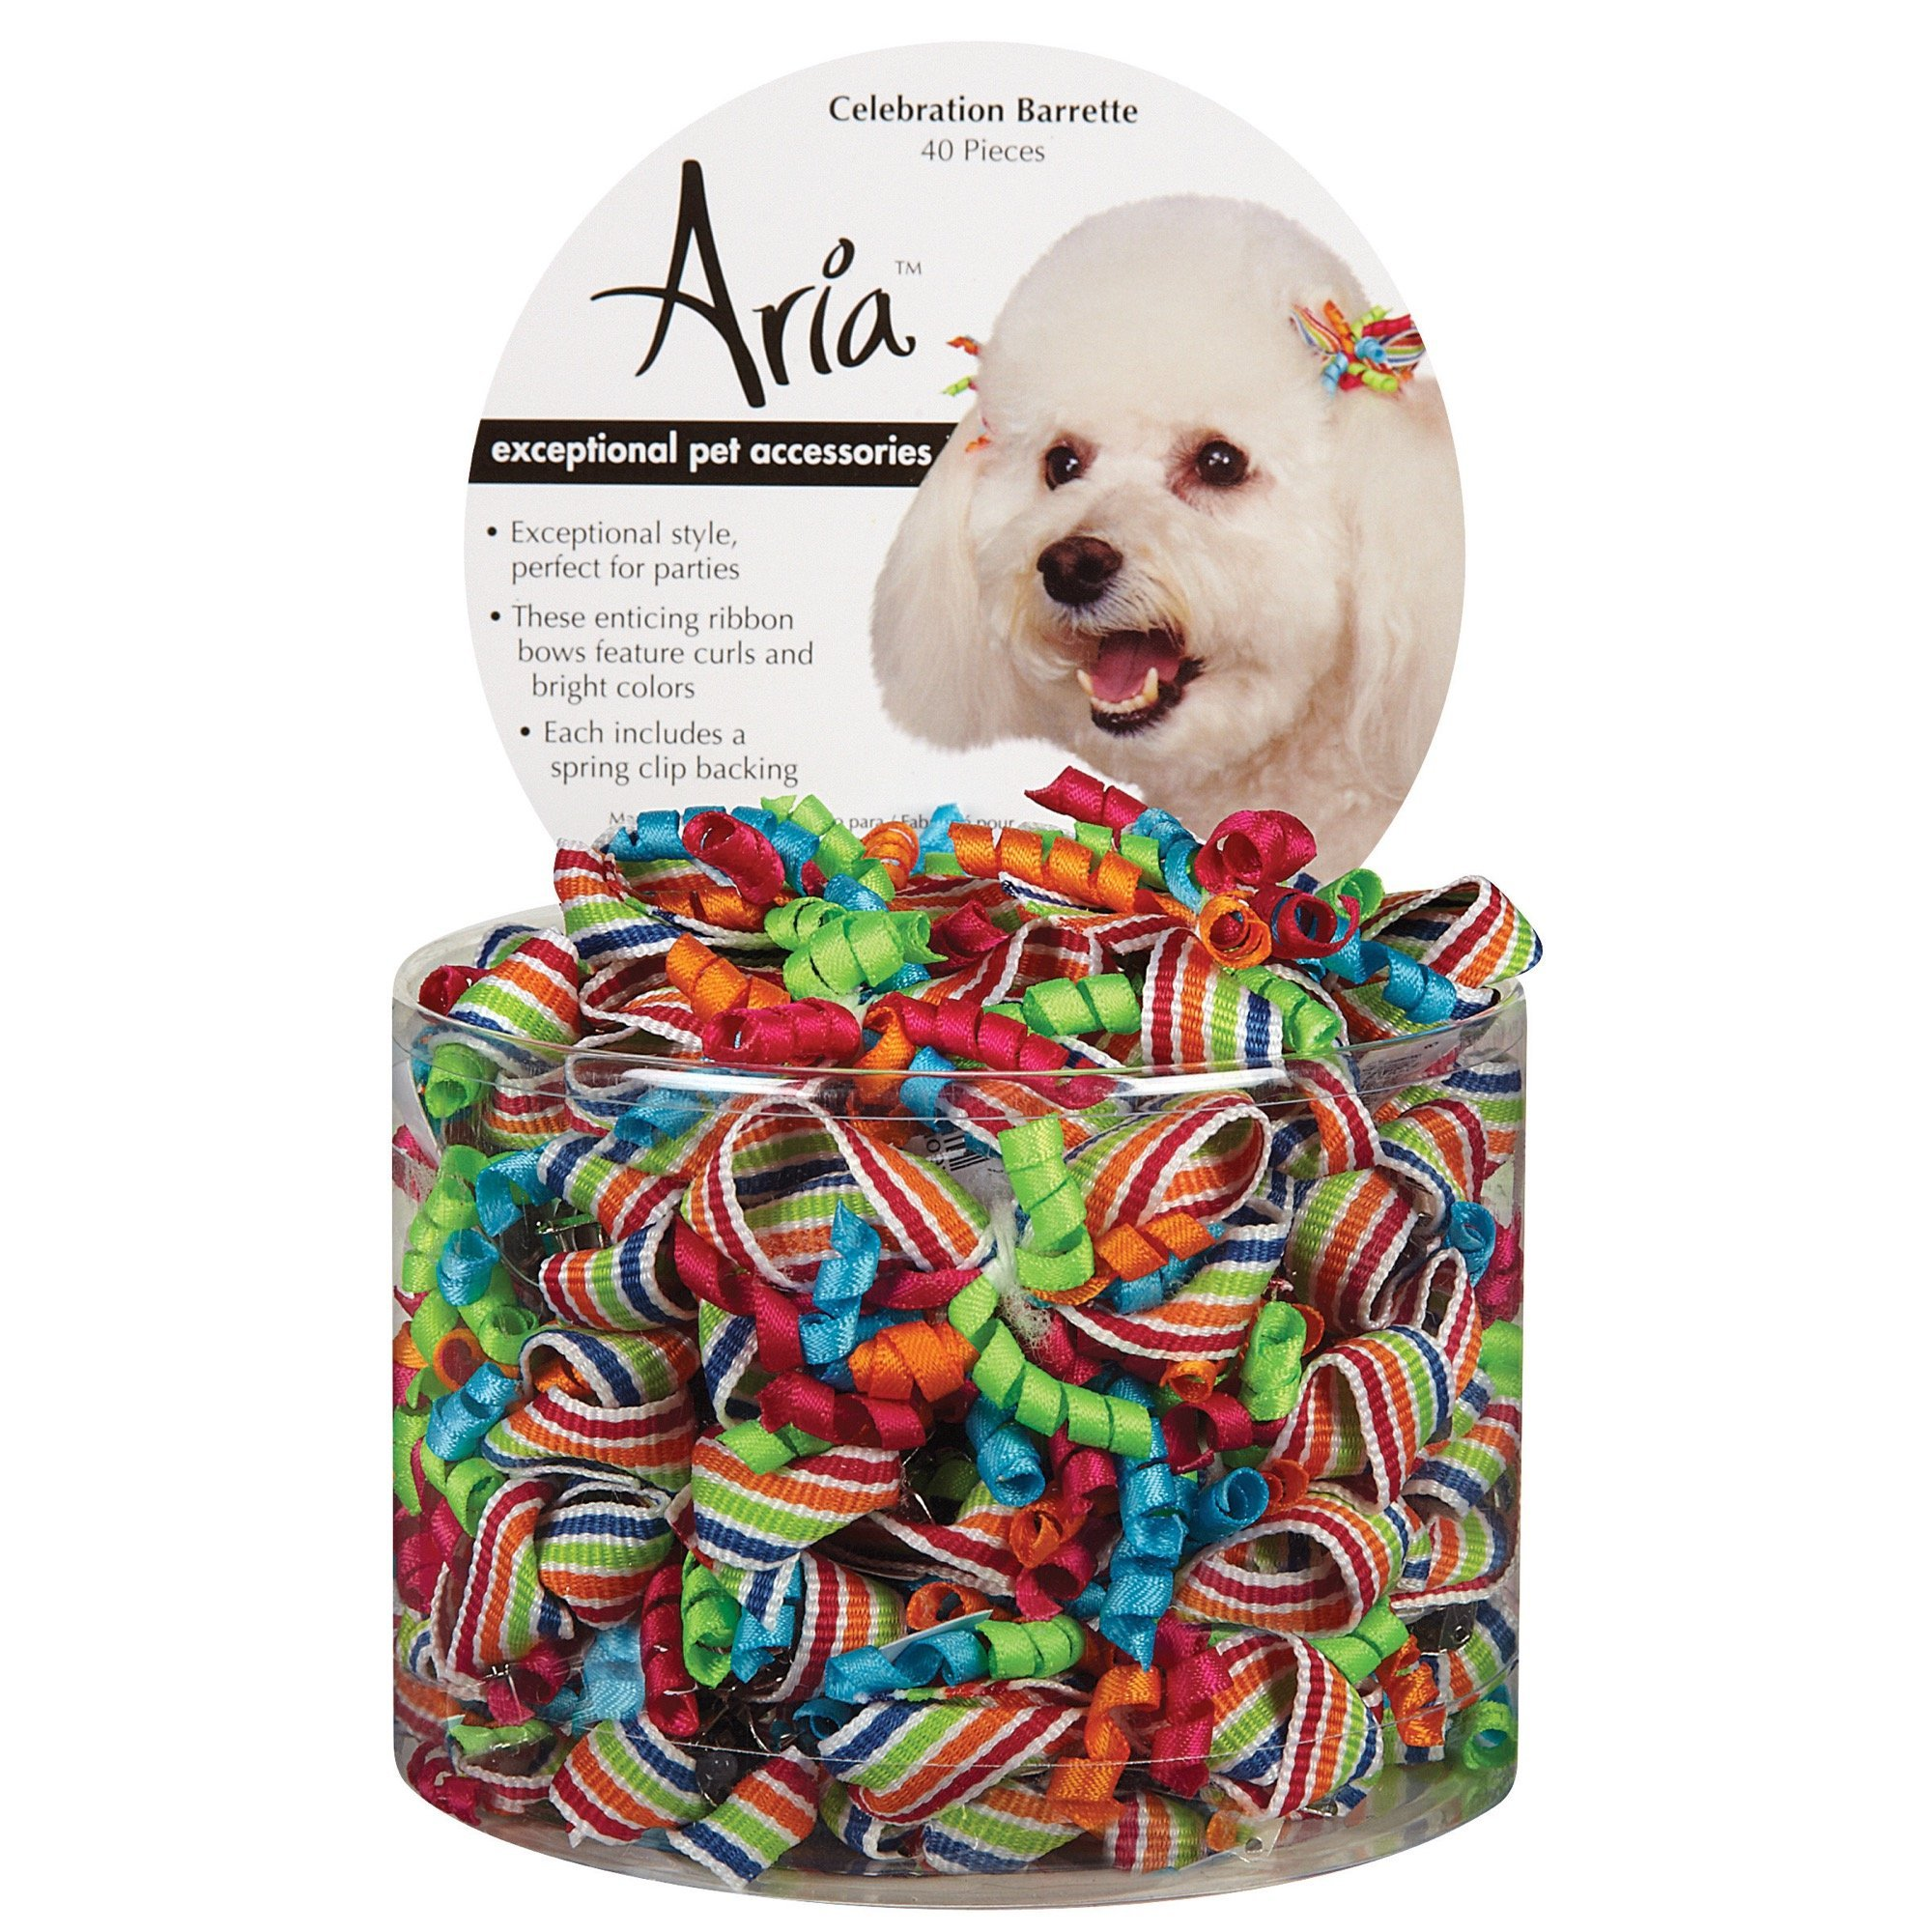 Aria Celebration Barettes for Dogs, 40-Piece Canisters by Aria